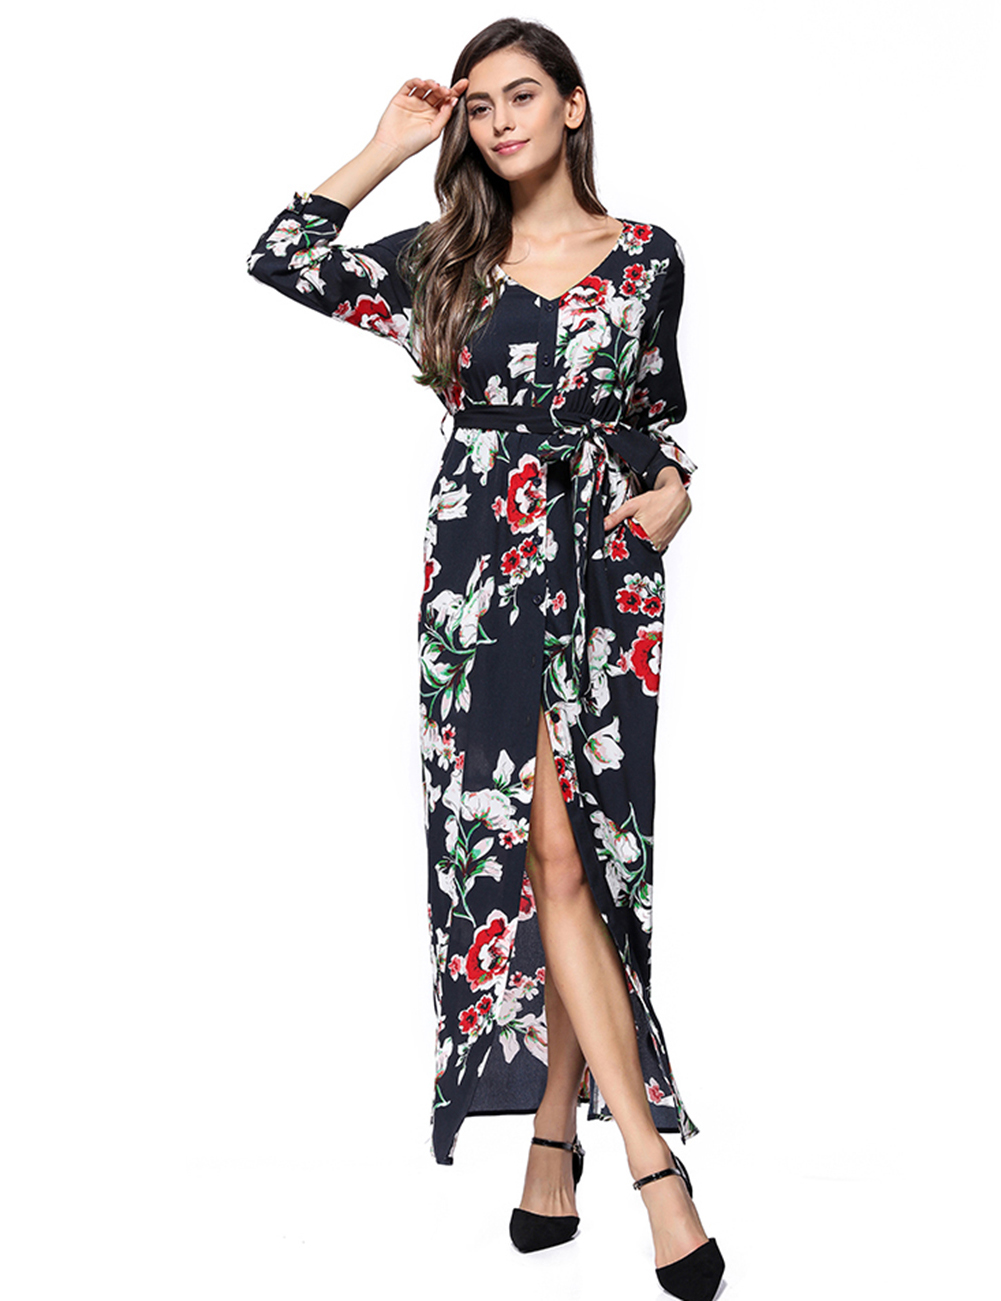 //cdn.affectcloud.com/feelingirldress/upload/imgs/2019-06-04/VZ190459-M04/VZ190459-M04-7.jpg